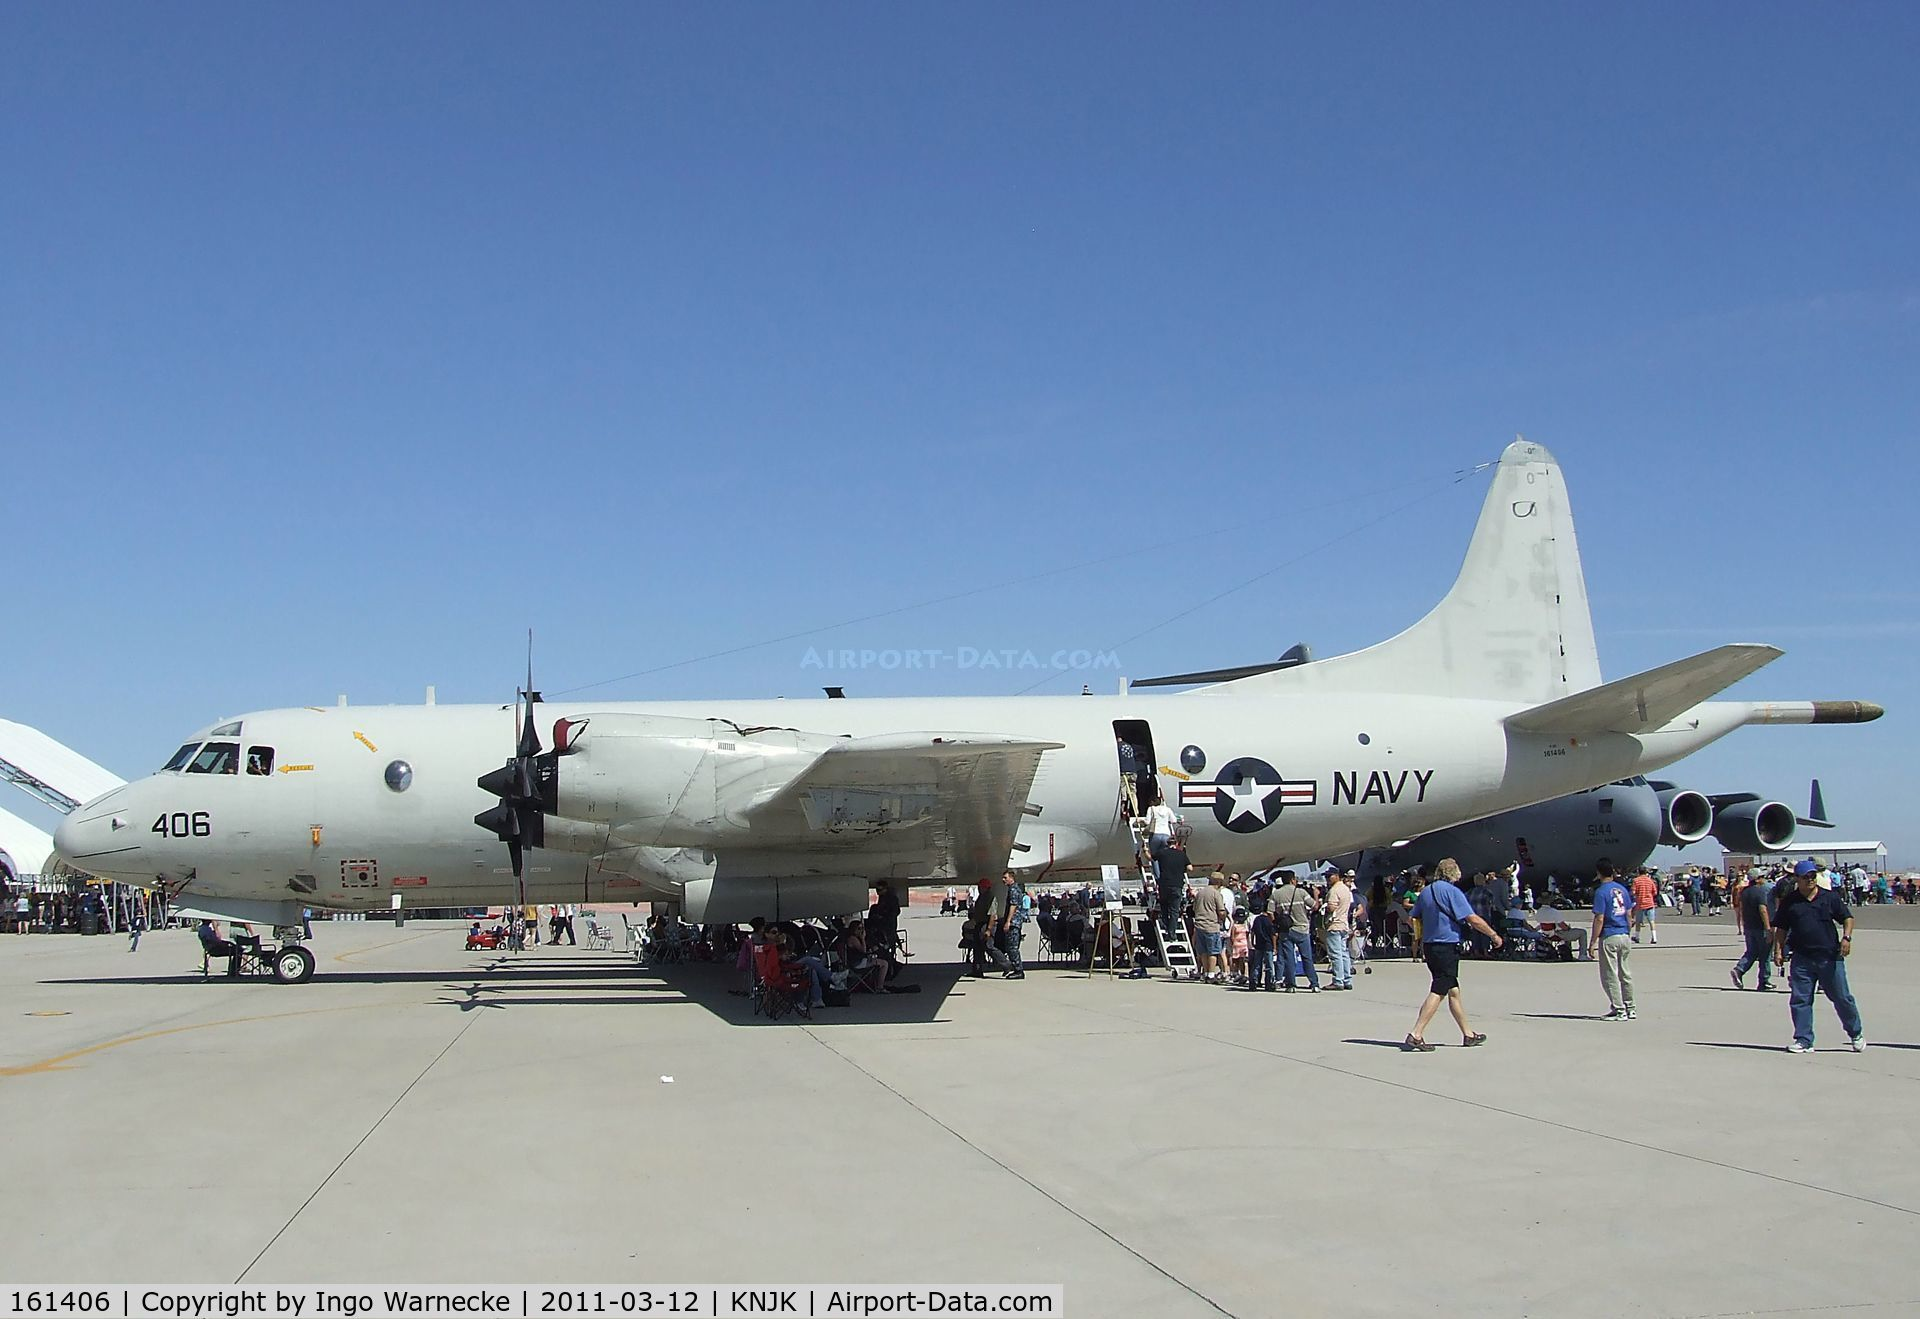 161406, Lockheed P-3C Orion C/N 285A-5743, Lockheed P-3C Orion of the US Navy  at the 2011 airshow at El Centro NAS, CA